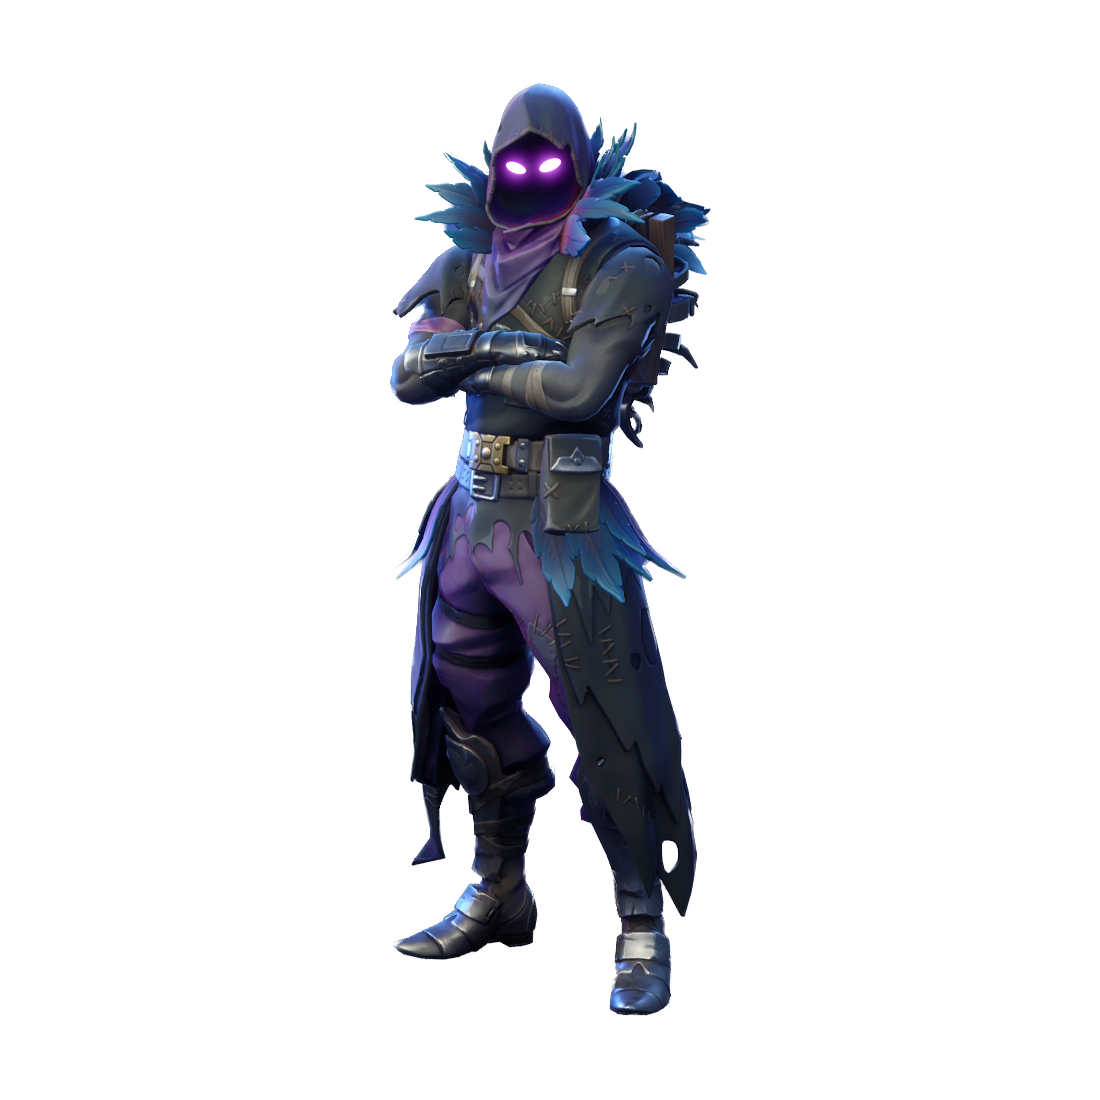 Raven skin png. Fnbr co fortnite cosmetics